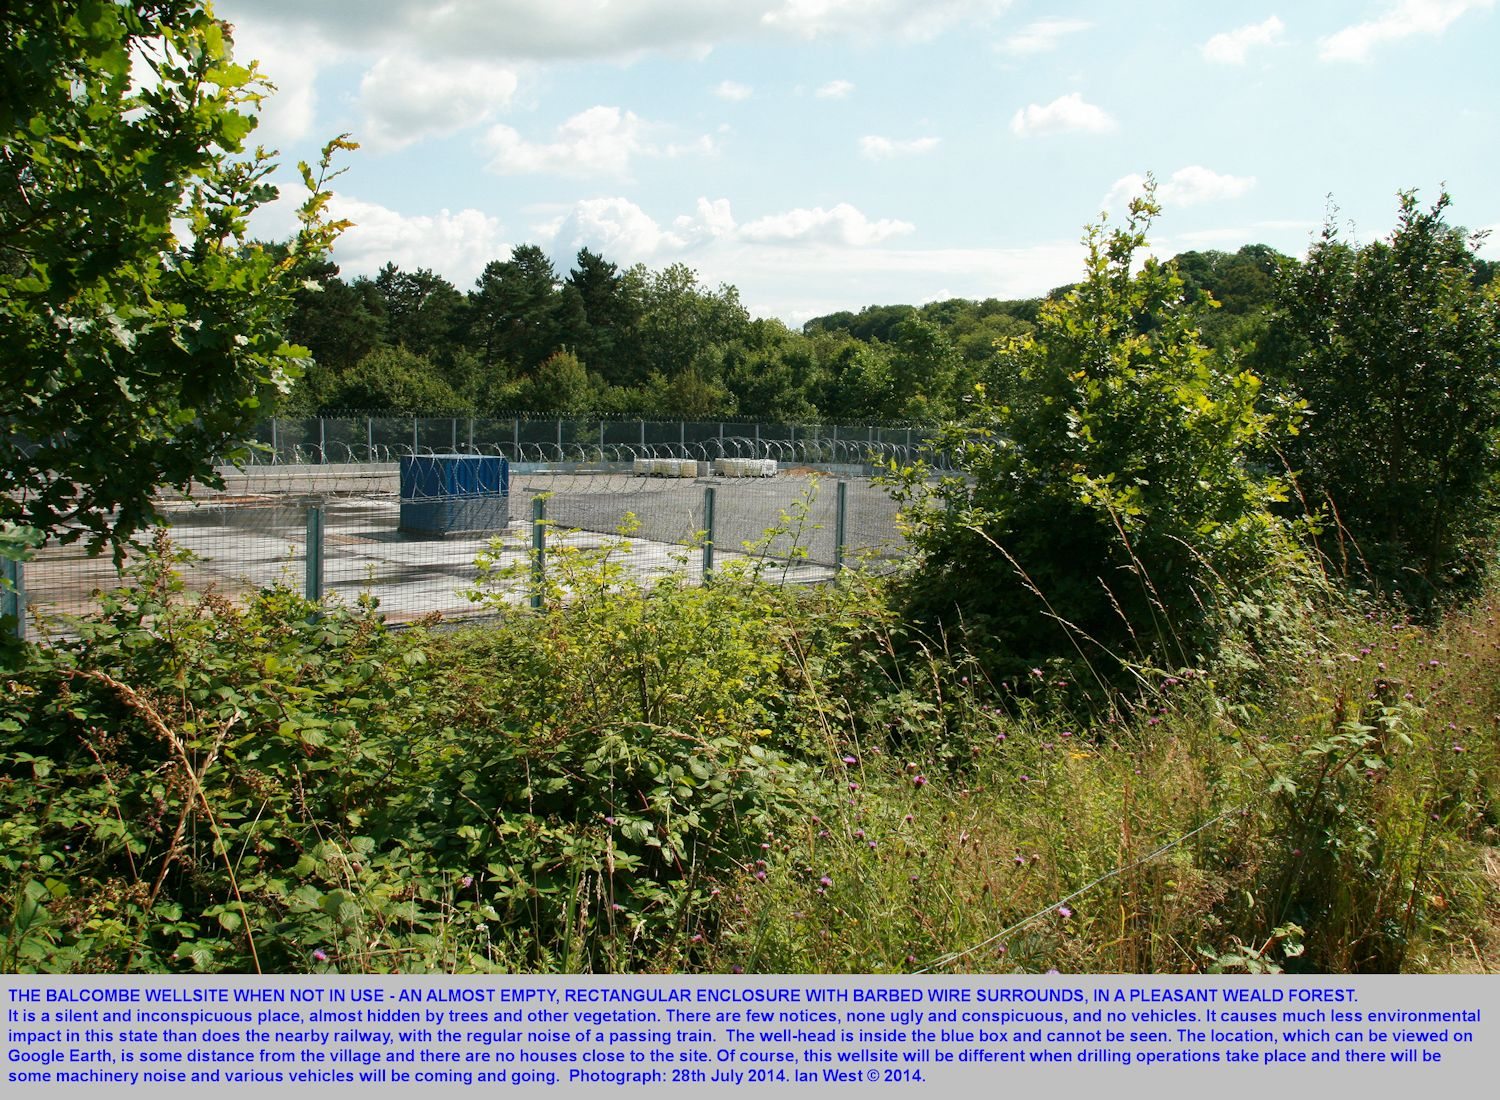 The Balcombe wellsite when not in use is inconspicuous and it is hidden in a quiet forest of the Weald, near a railway, but away from houses, photograph July 2014